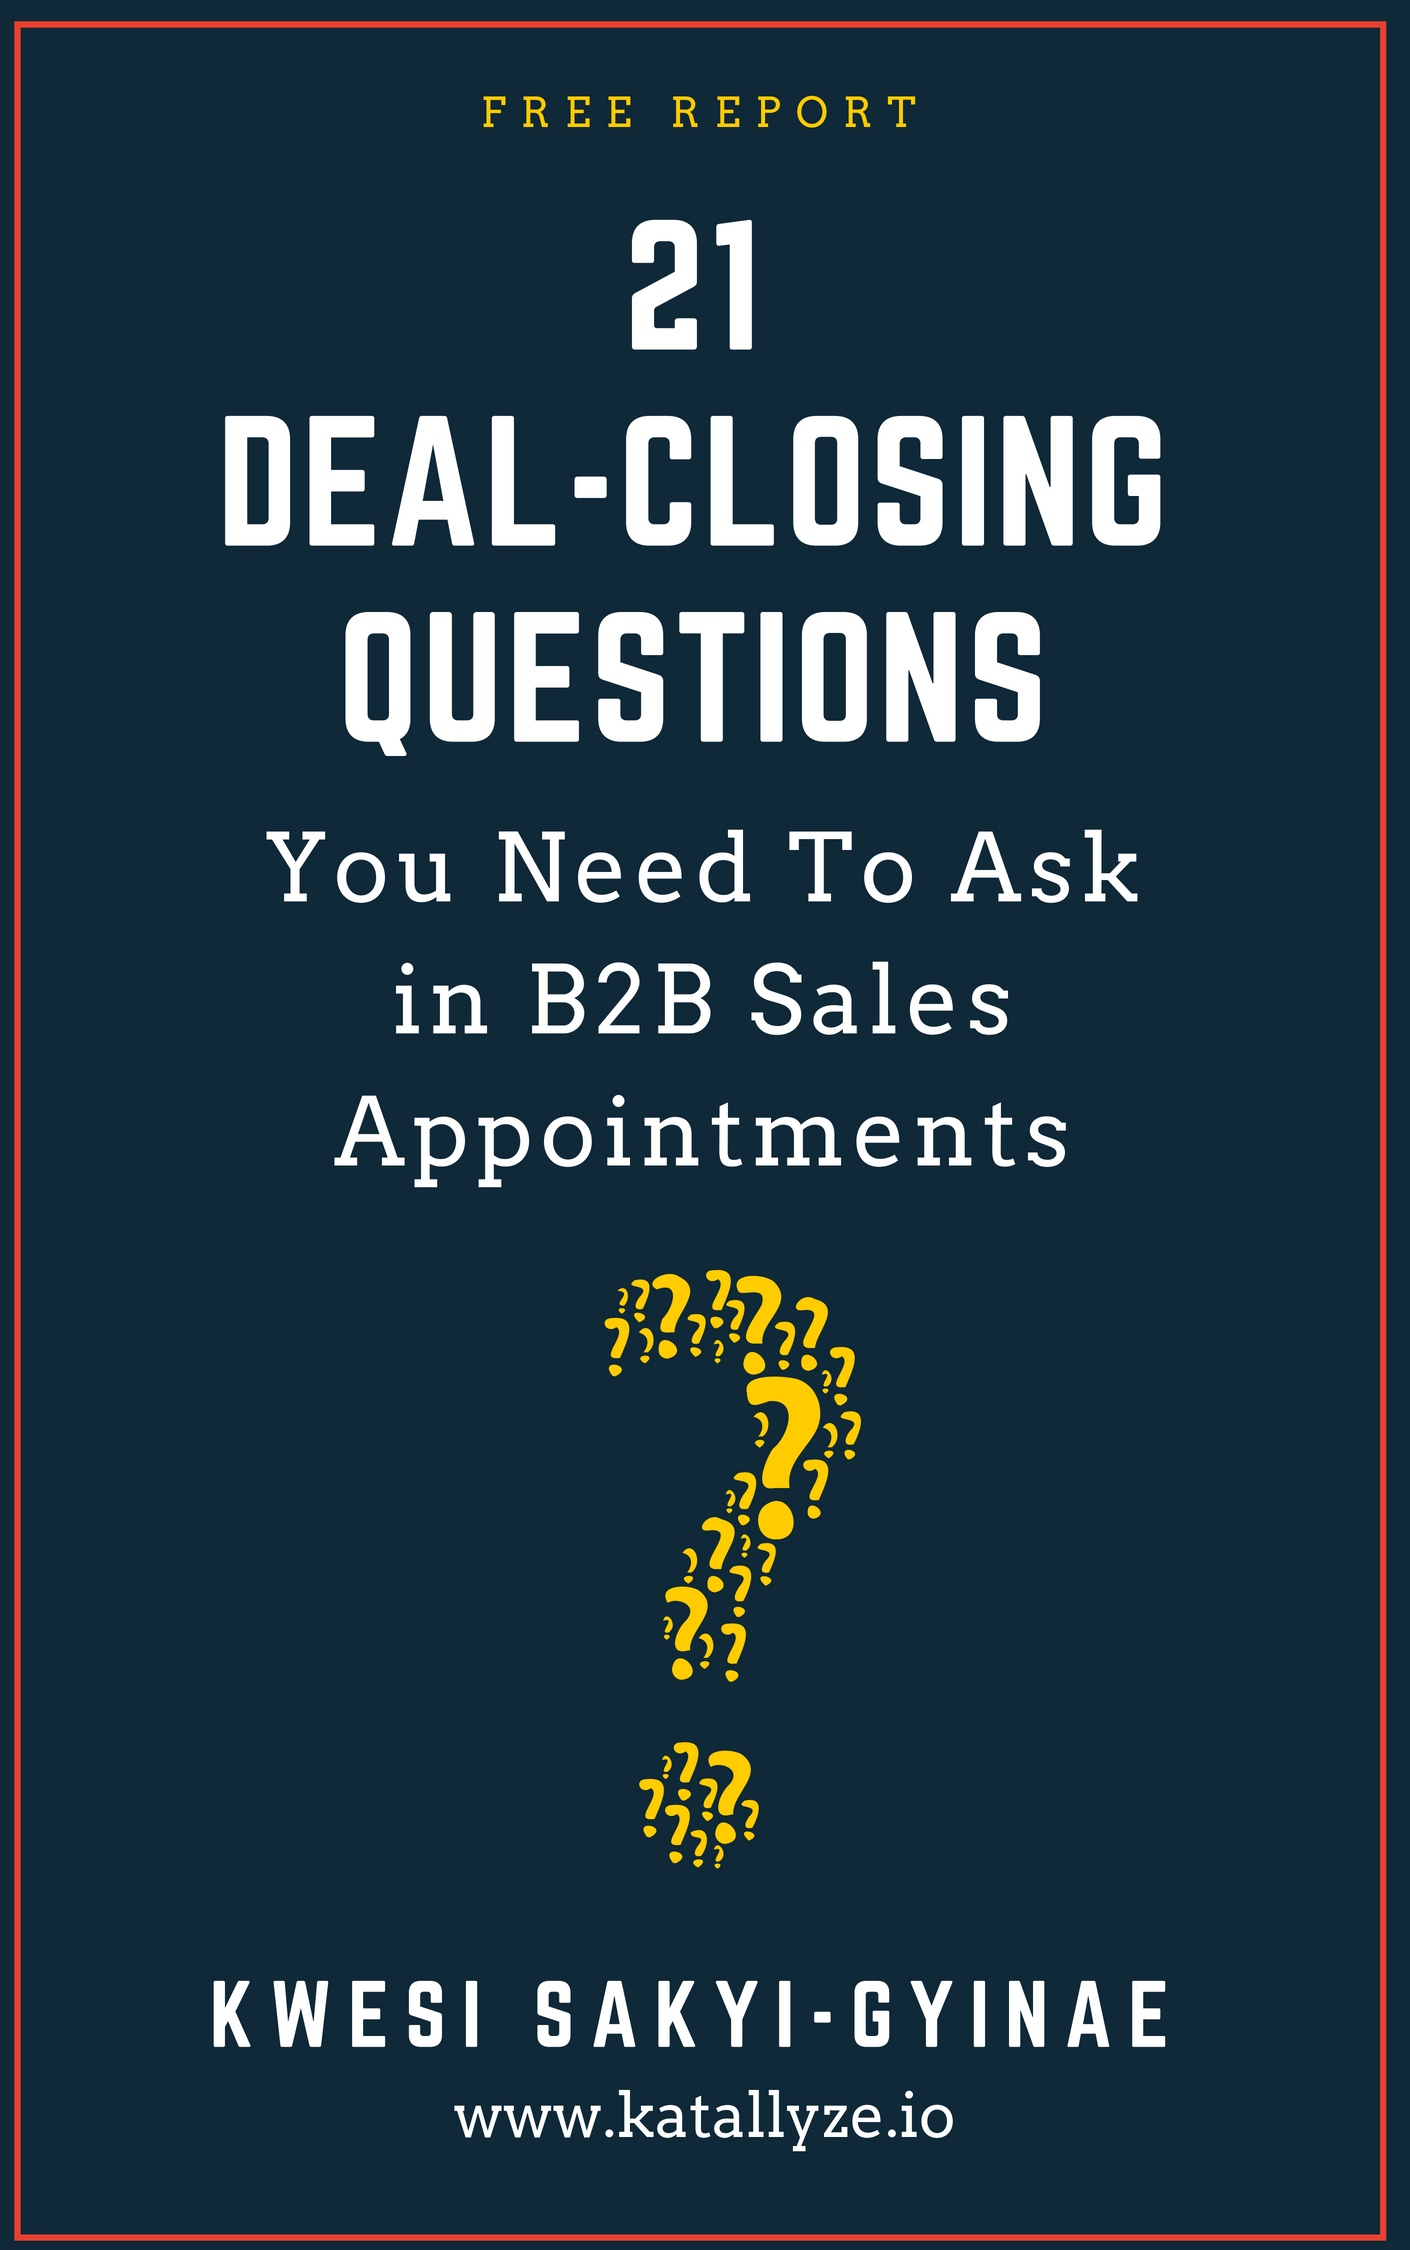 Free b2b appointment setting lead generation ebooks and reports 21 deal closing questions for b2b appointments fandeluxe Images